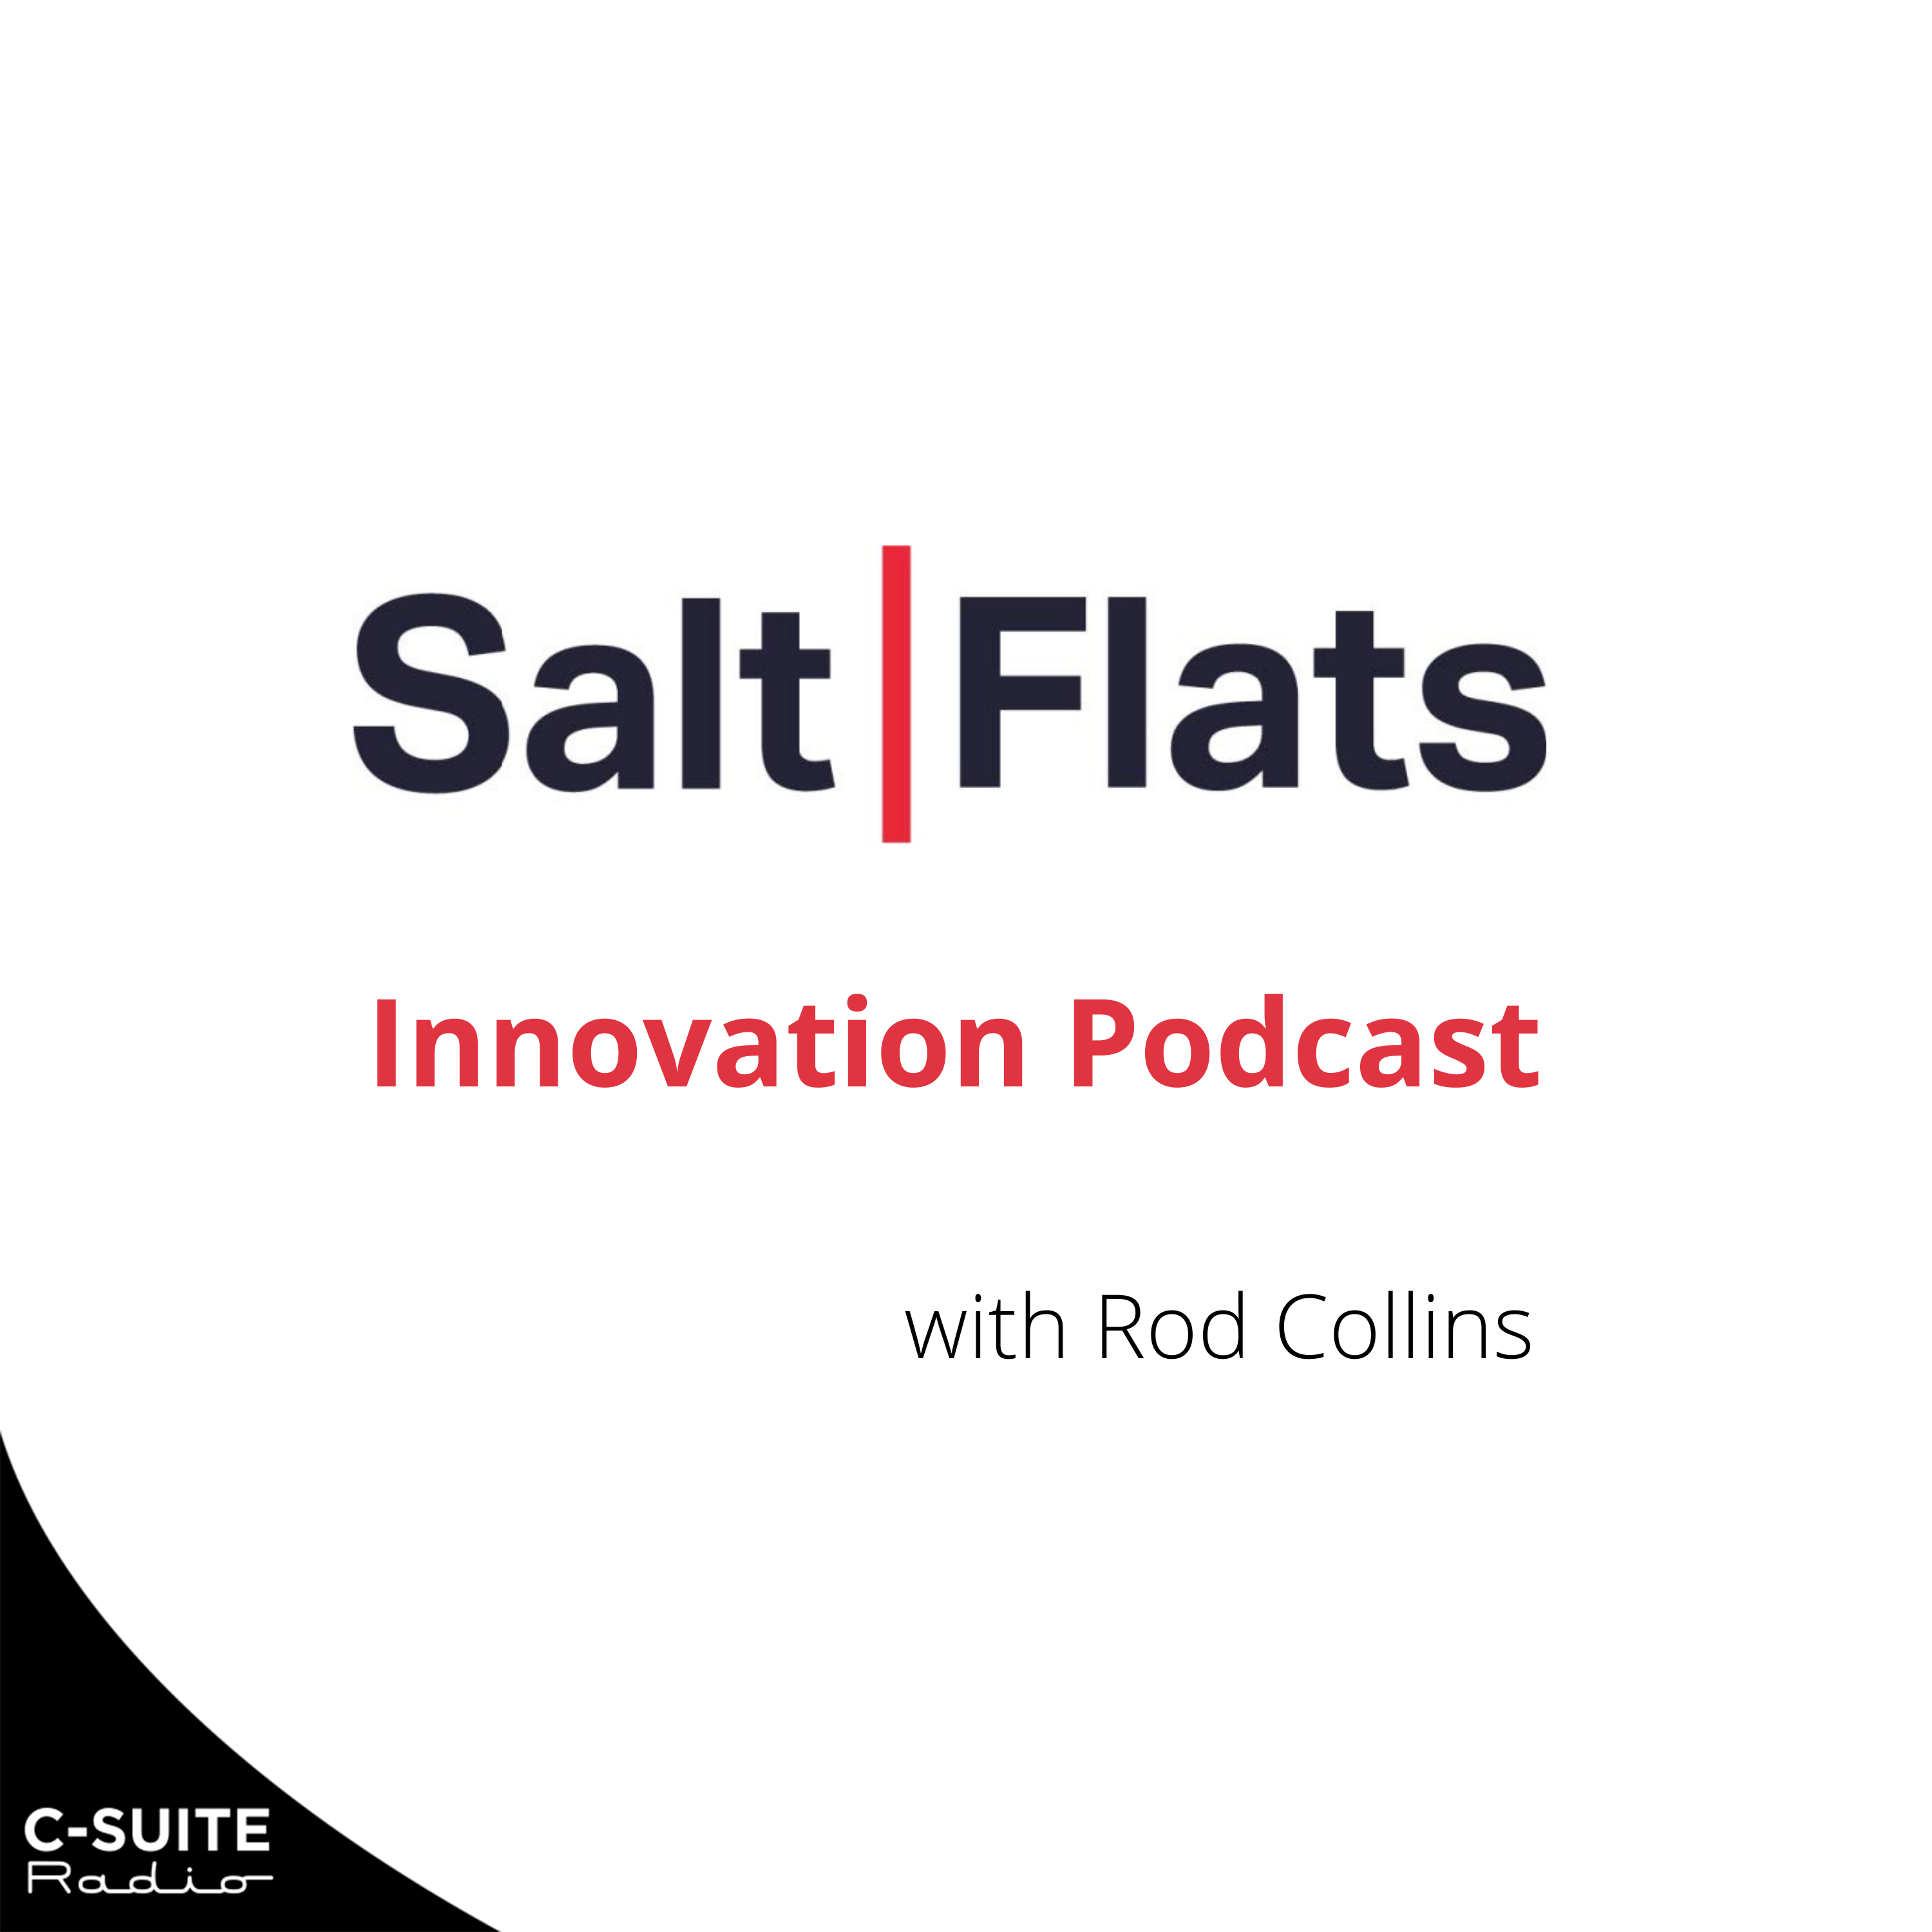 Salt Flats Innovation Podcast